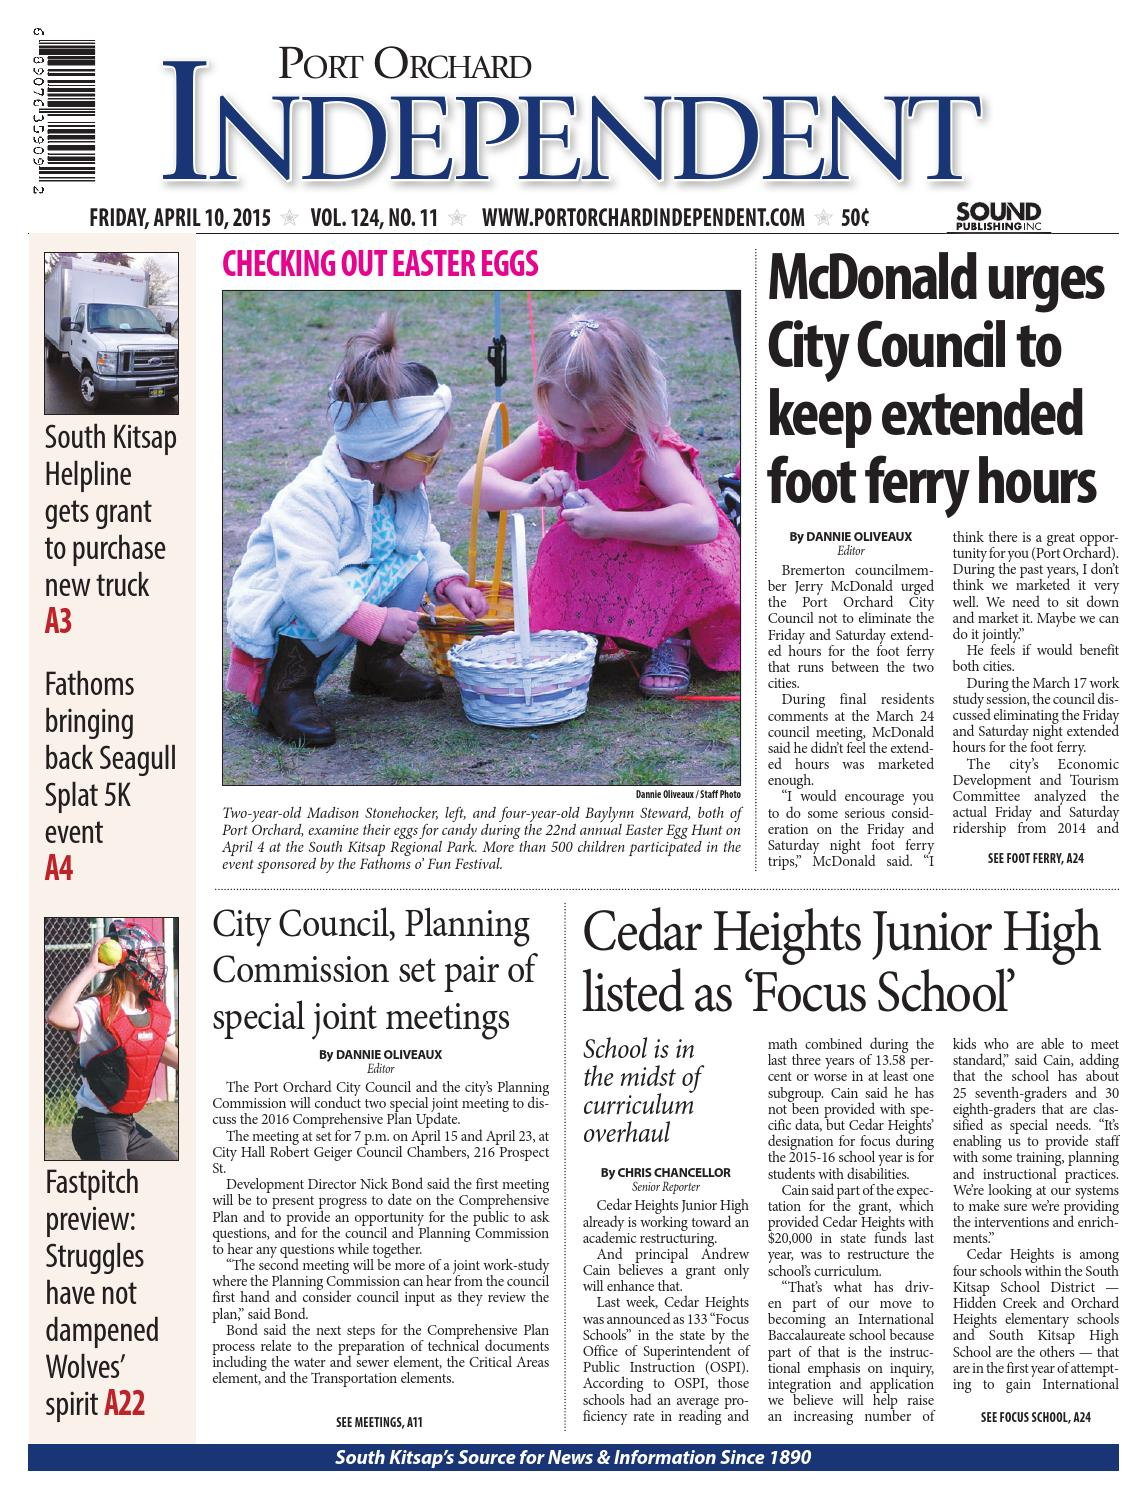 Port Orchard Independent April 10 2015 By Sound